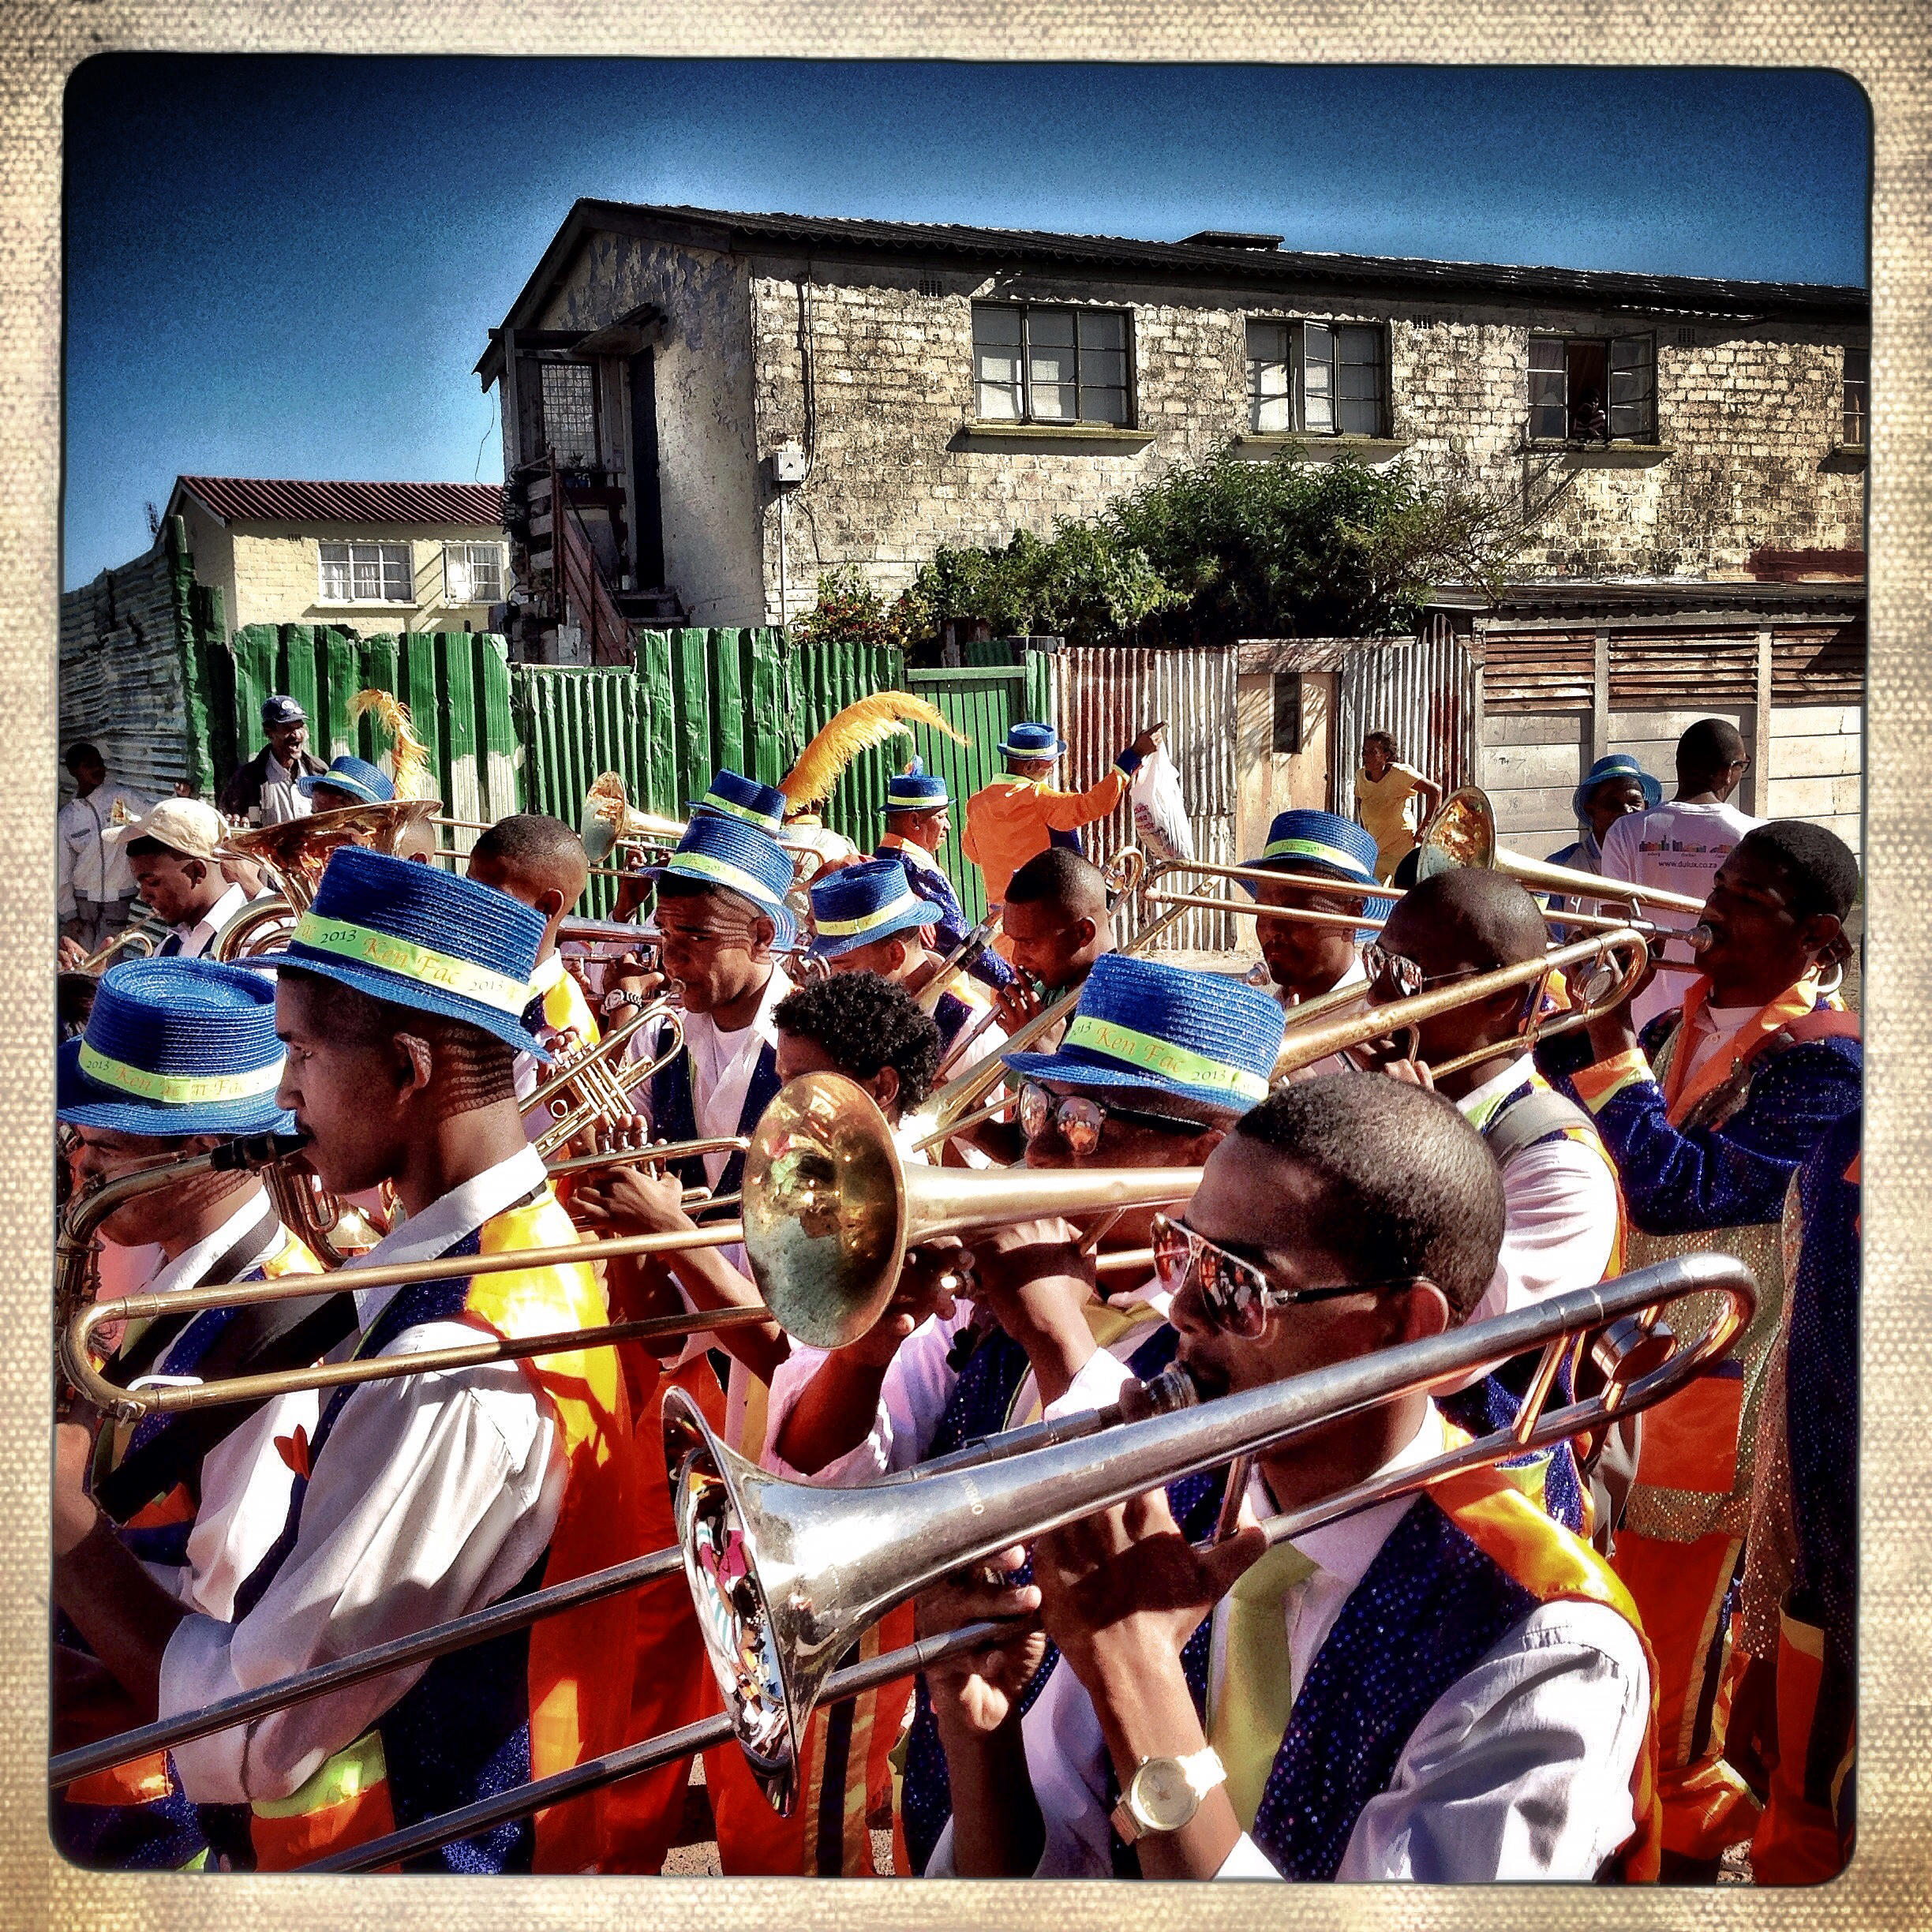 The Ken Fac troupe, from Kensington, marched through the streets of Parkwood before attending the final completion of the 2013 Minstrel Carnival in Athlone, Cape Town, South Africa.  @charlieshoemaker